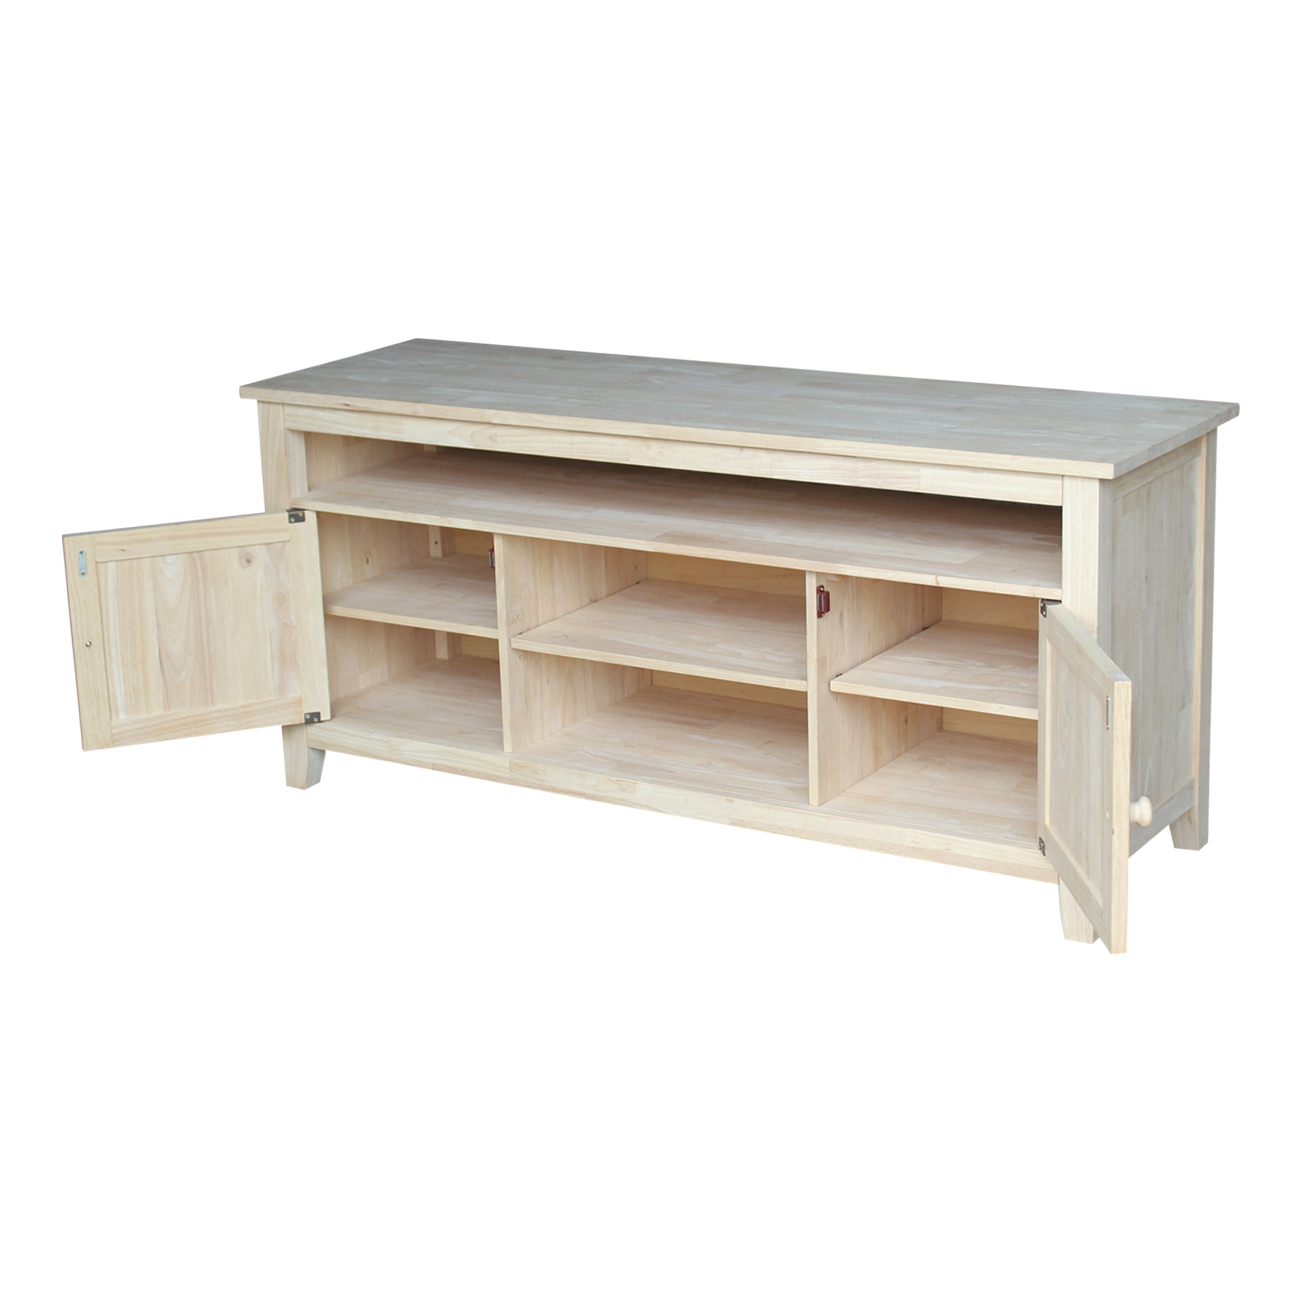 The Sturbridge Tv Stand Is Solid Wood And Unfinished Or